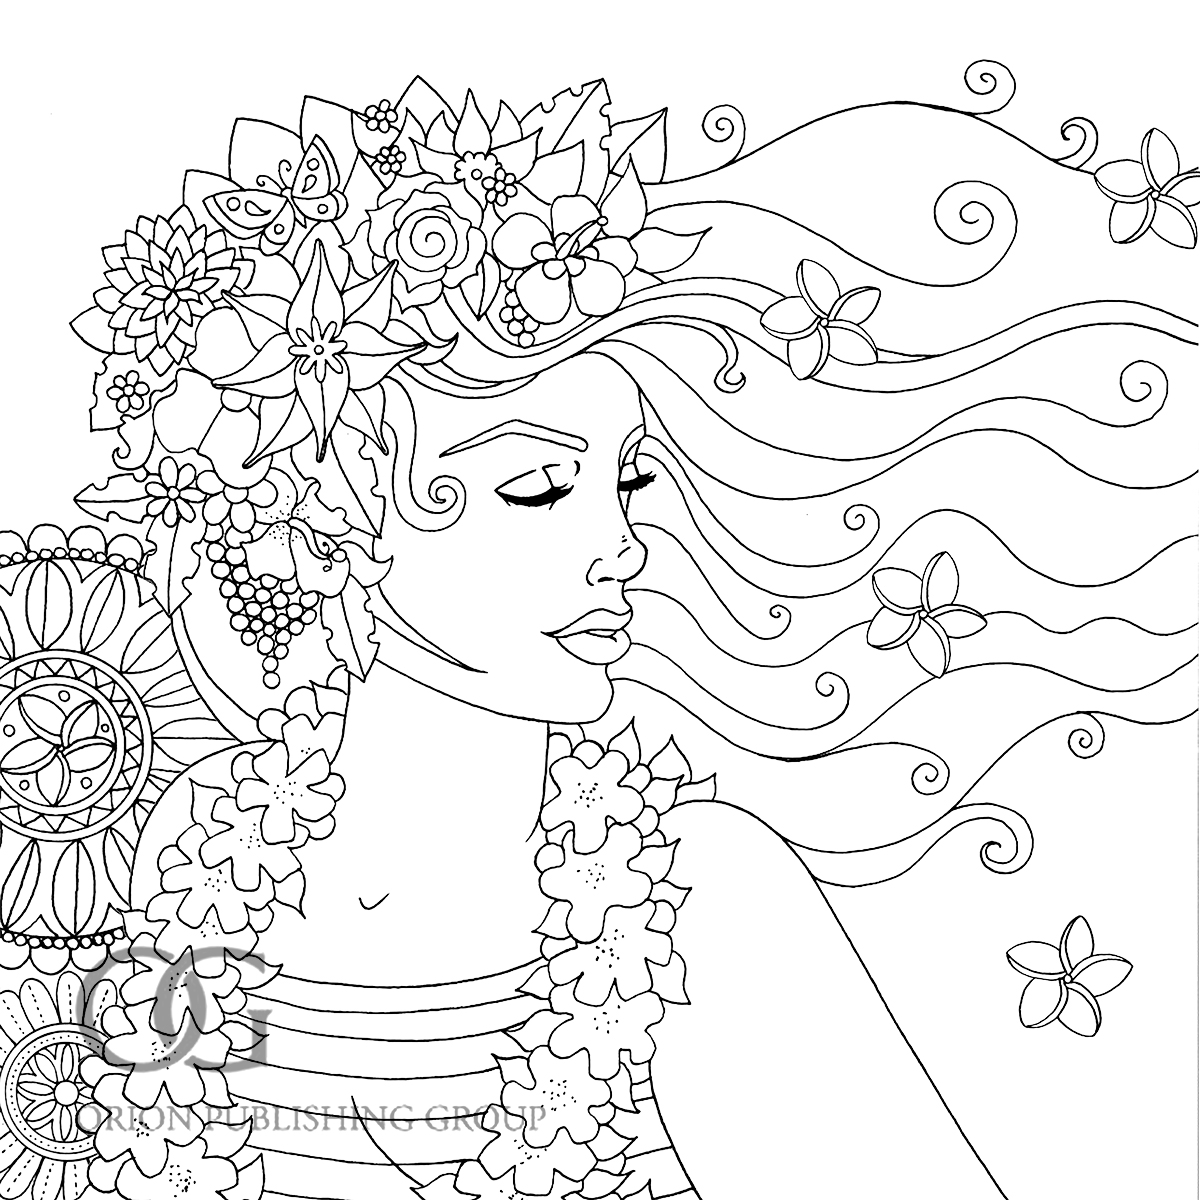 Mindfulness Coloring Book Coloring Pages